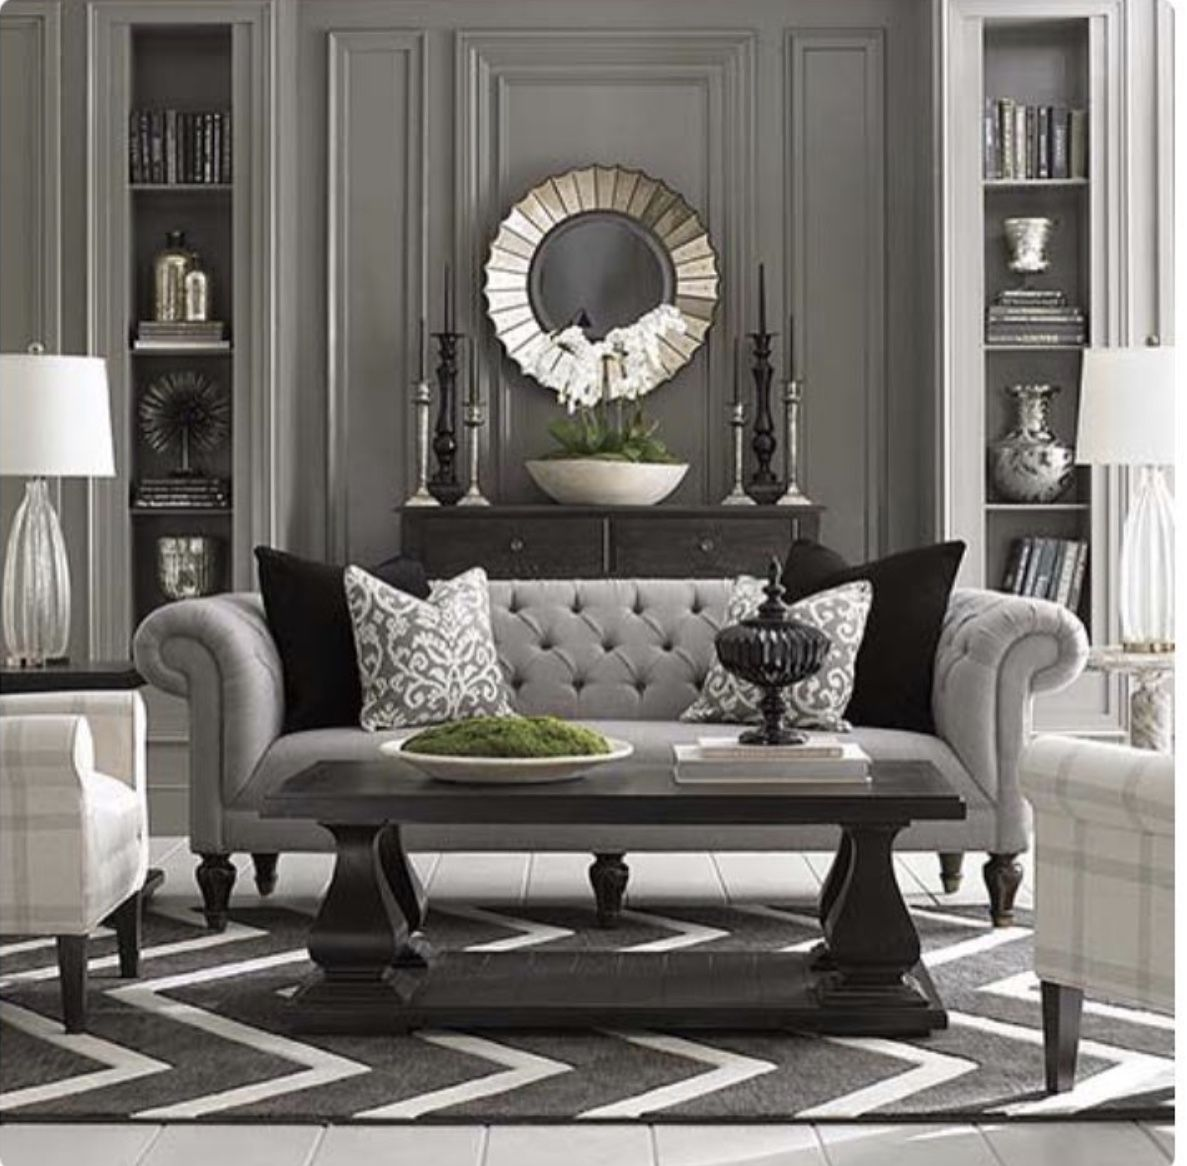 Elegant Contemporary Living Room Furniture: Pin By Clare Mc Stay On Living Room